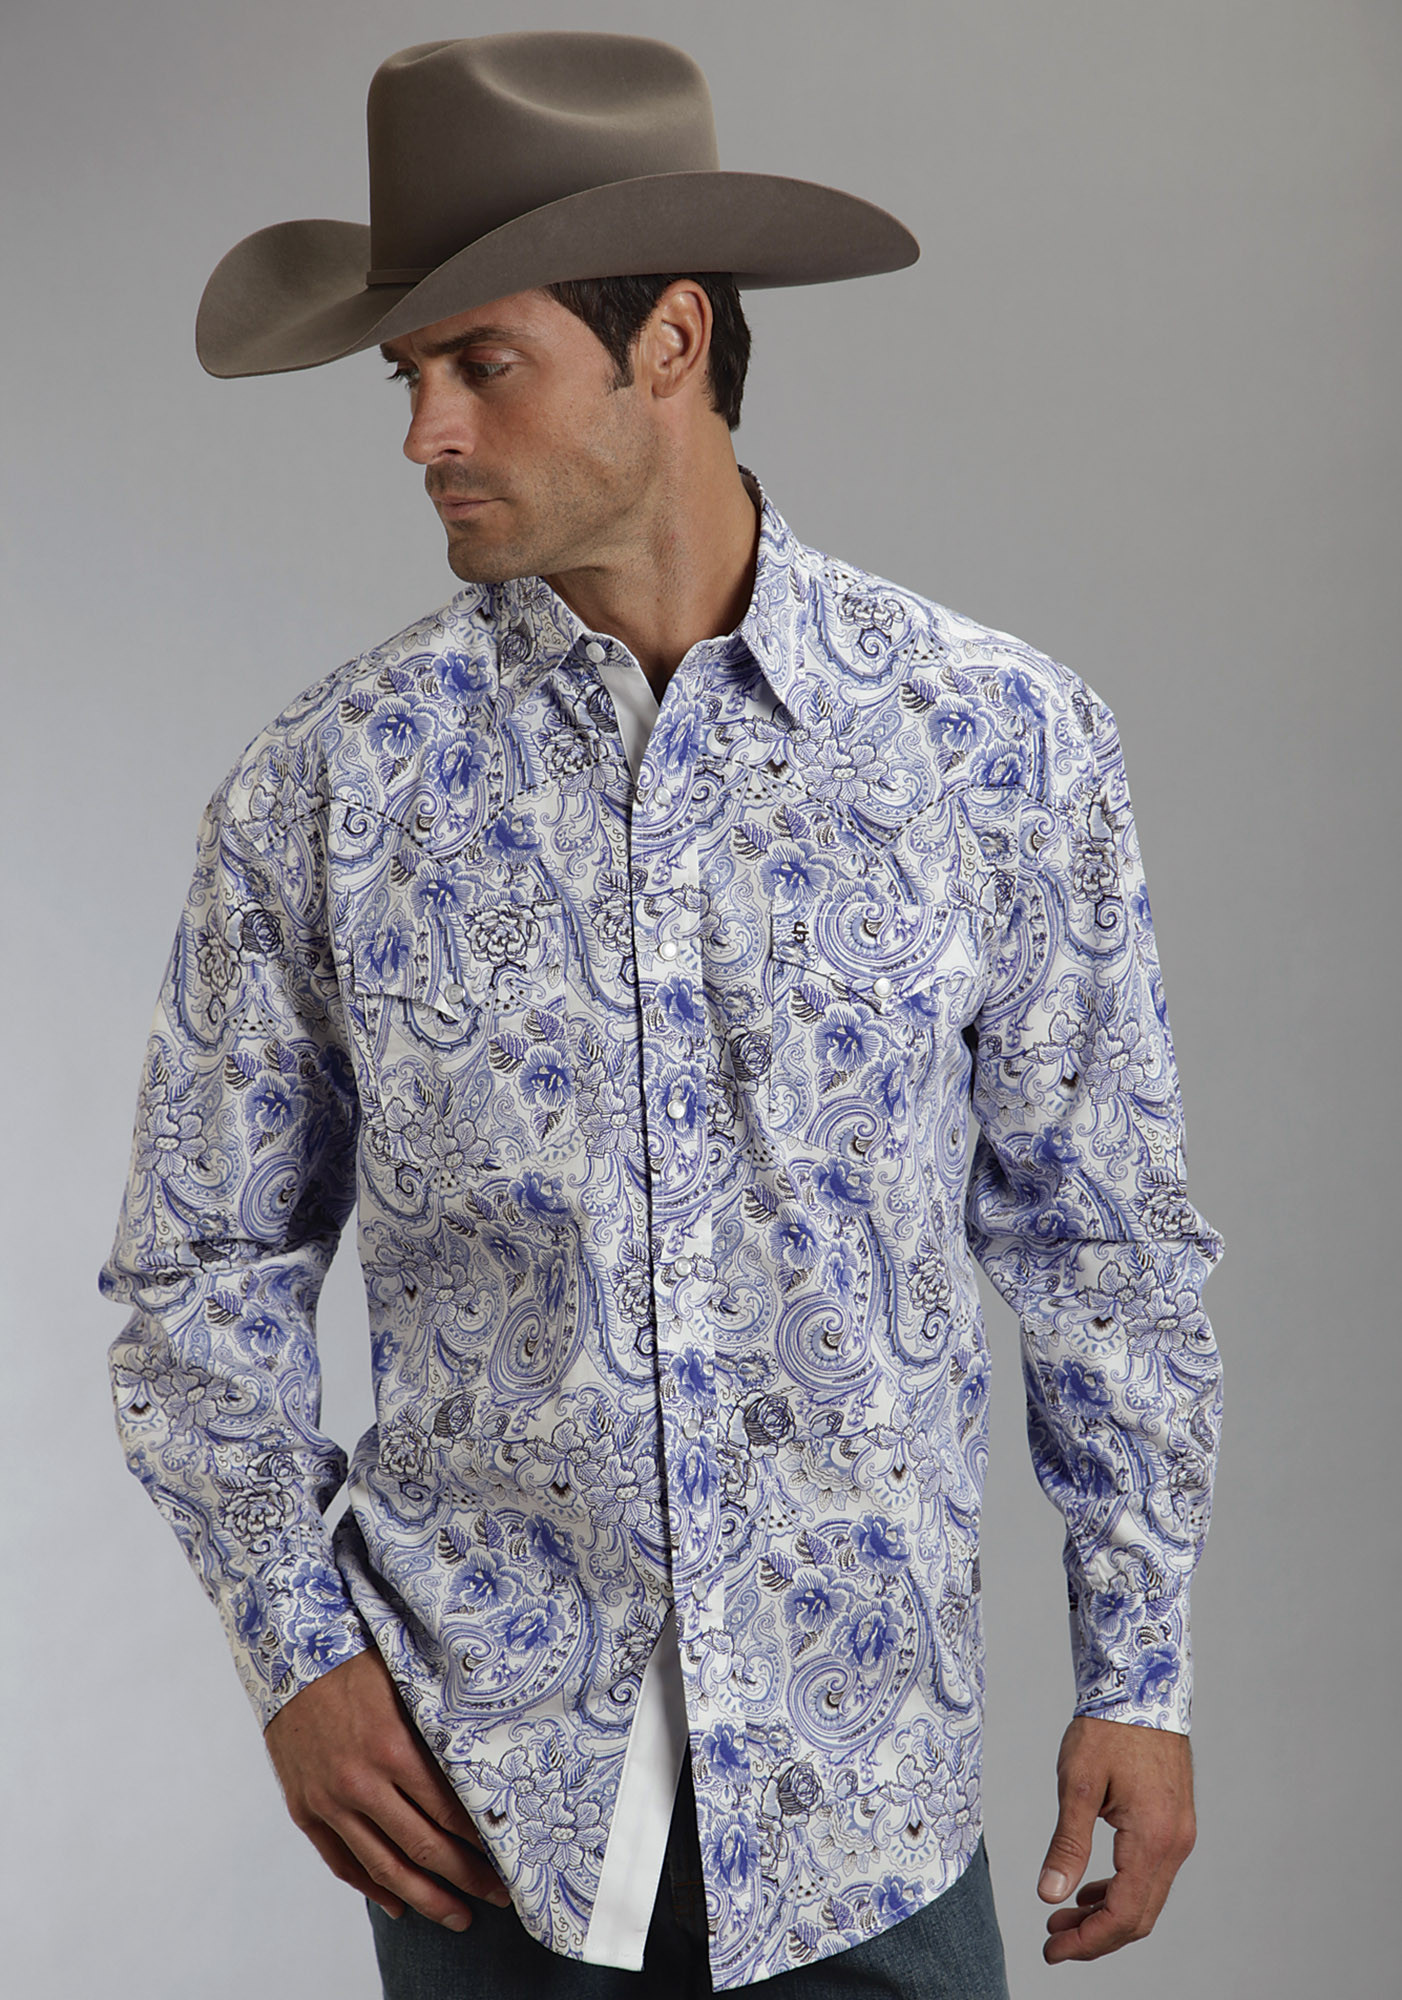 Find great deals on eBay for pearl snap shirt. Shop with confidence.